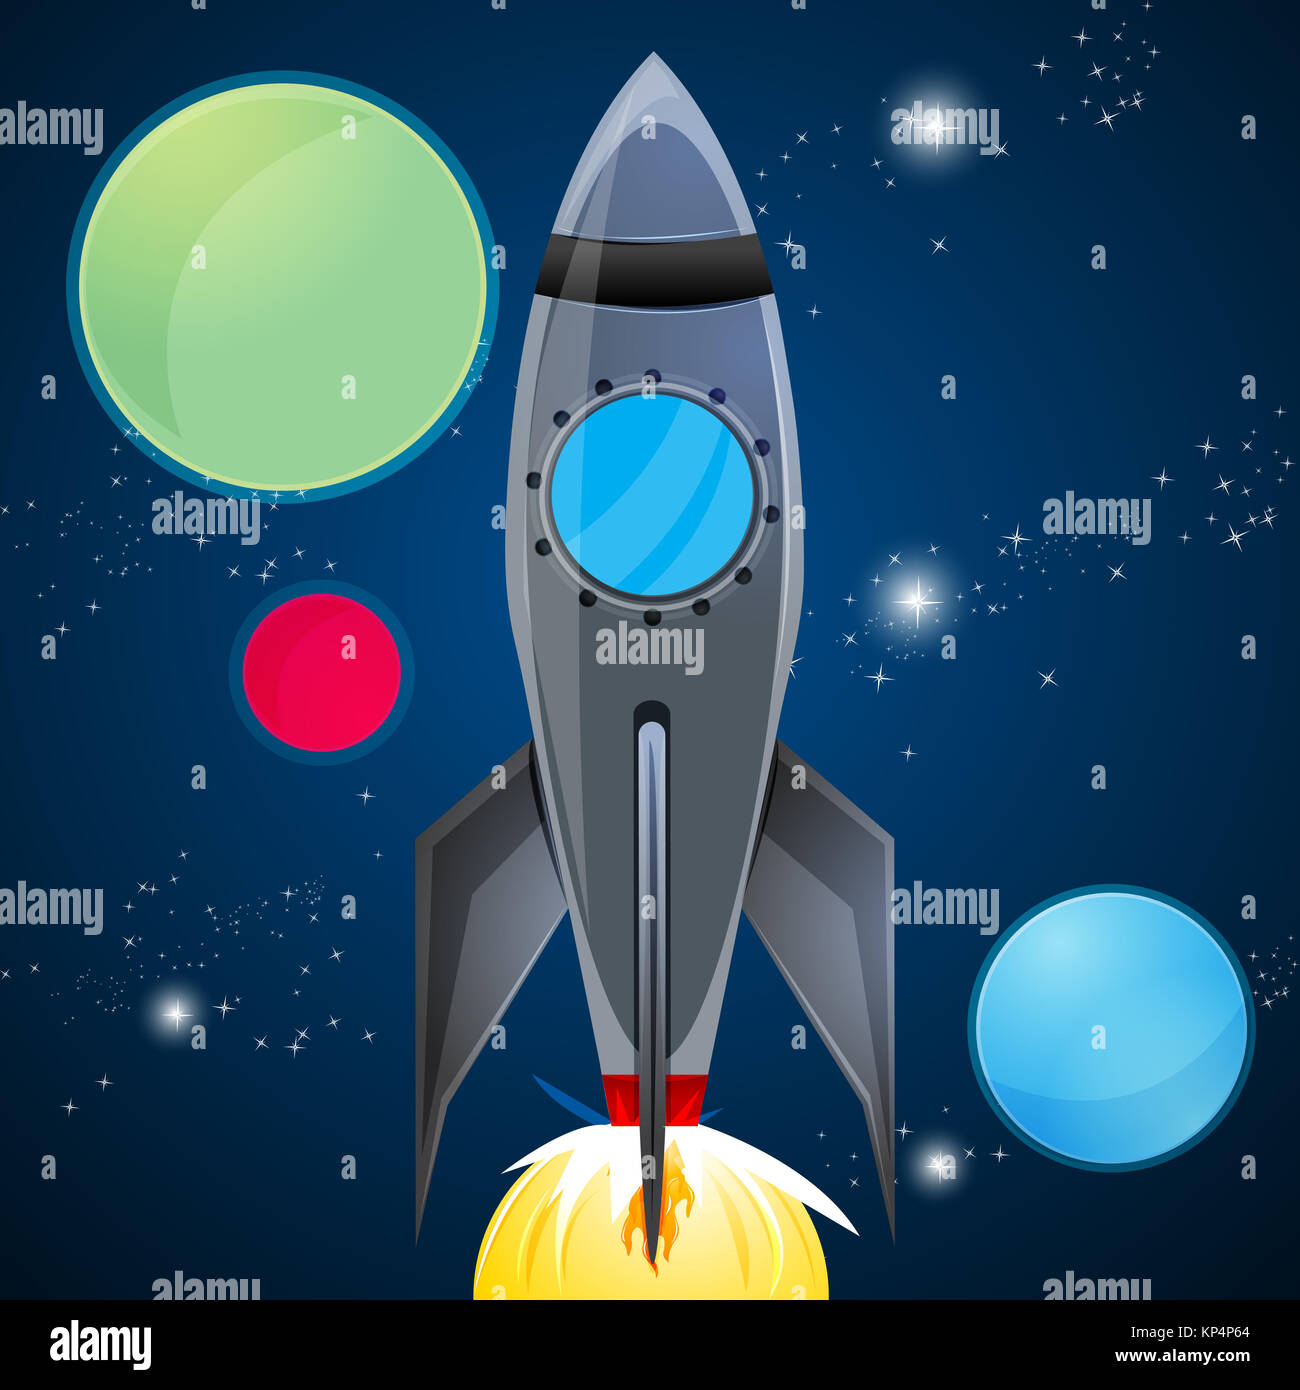 illustration of rocket launcher in sky on abstract background - Stock Image